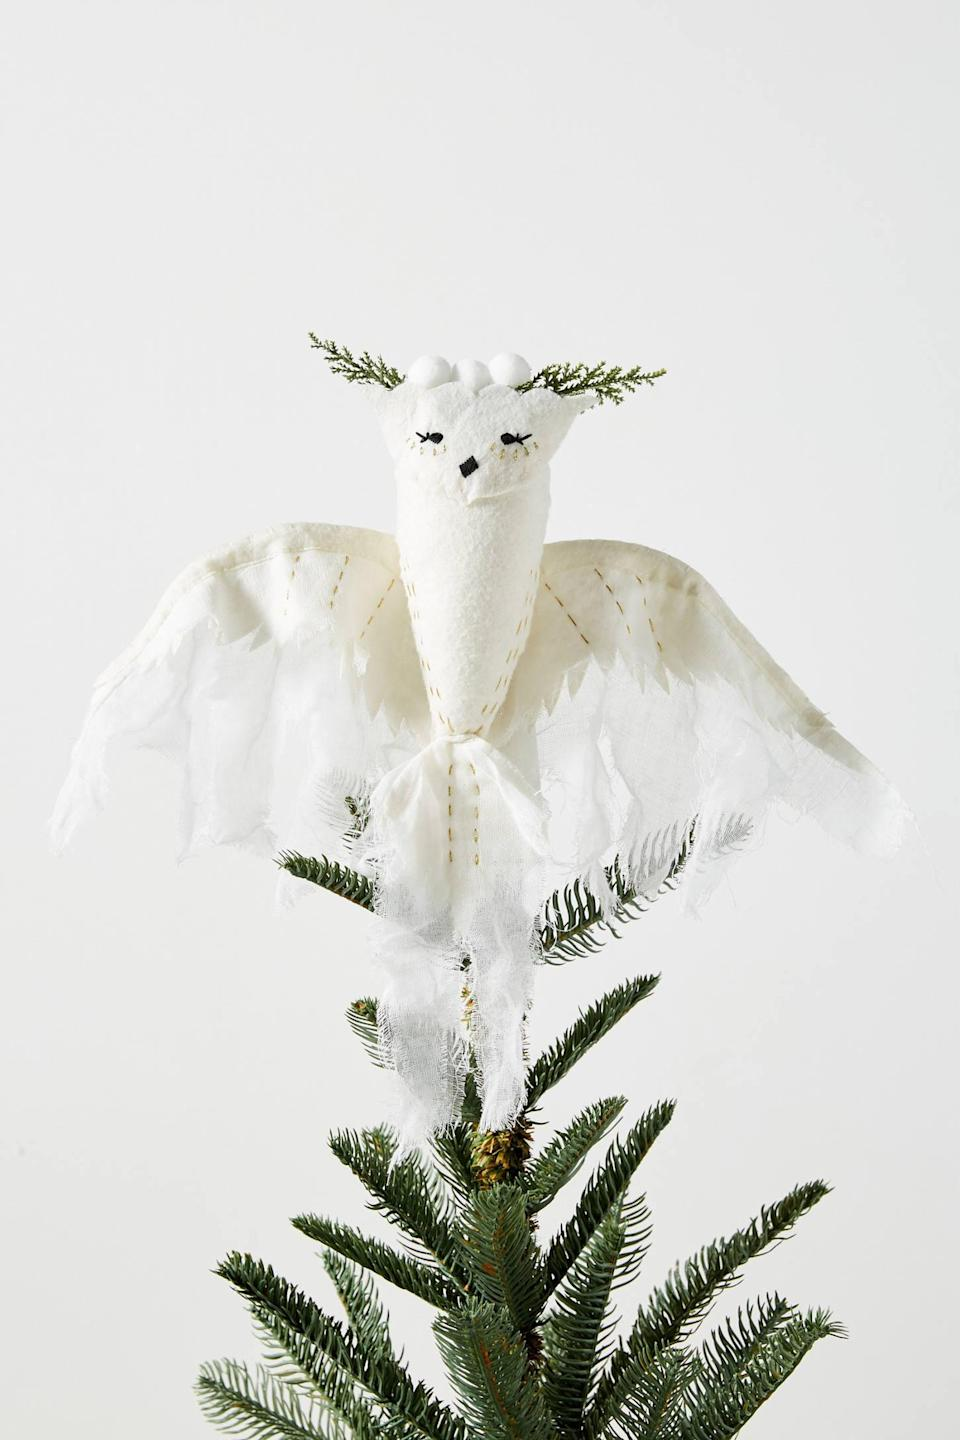 """<p>The <a href=""""https://www.popsugar.com/buy/Fauna-Lune-Snowy-Owl-Tree-Topper-490481?p_name=Fauna%20Lune%20Snowy%20Owl%20Tree%20Topper&retailer=anthropologie.com&pid=490481&price=58&evar1=casa%3Aus&evar9=46615300&evar98=https%3A%2F%2Fwww.popsugar.com%2Fhome%2Fphoto-gallery%2F46615300%2Fimage%2F46615351%2FFauna-Lune-Snowy-Owl-Tree-Topper&list1=shopping%2Canthropologie%2Choliday%2Cchristmas%2Cchristmas%20decorations%2Choliday%20decor%2Chome%20shopping&prop13=mobile&pdata=1"""" rel=""""nofollow noopener"""" class=""""link rapid-noclick-resp"""" target=""""_blank"""" data-ylk=""""slk:Fauna Lune Snowy Owl Tree Topper"""">Fauna Lune Snowy Owl Tree Topper</a> ($58) is perfect for an all-white decorated tree. </p>"""